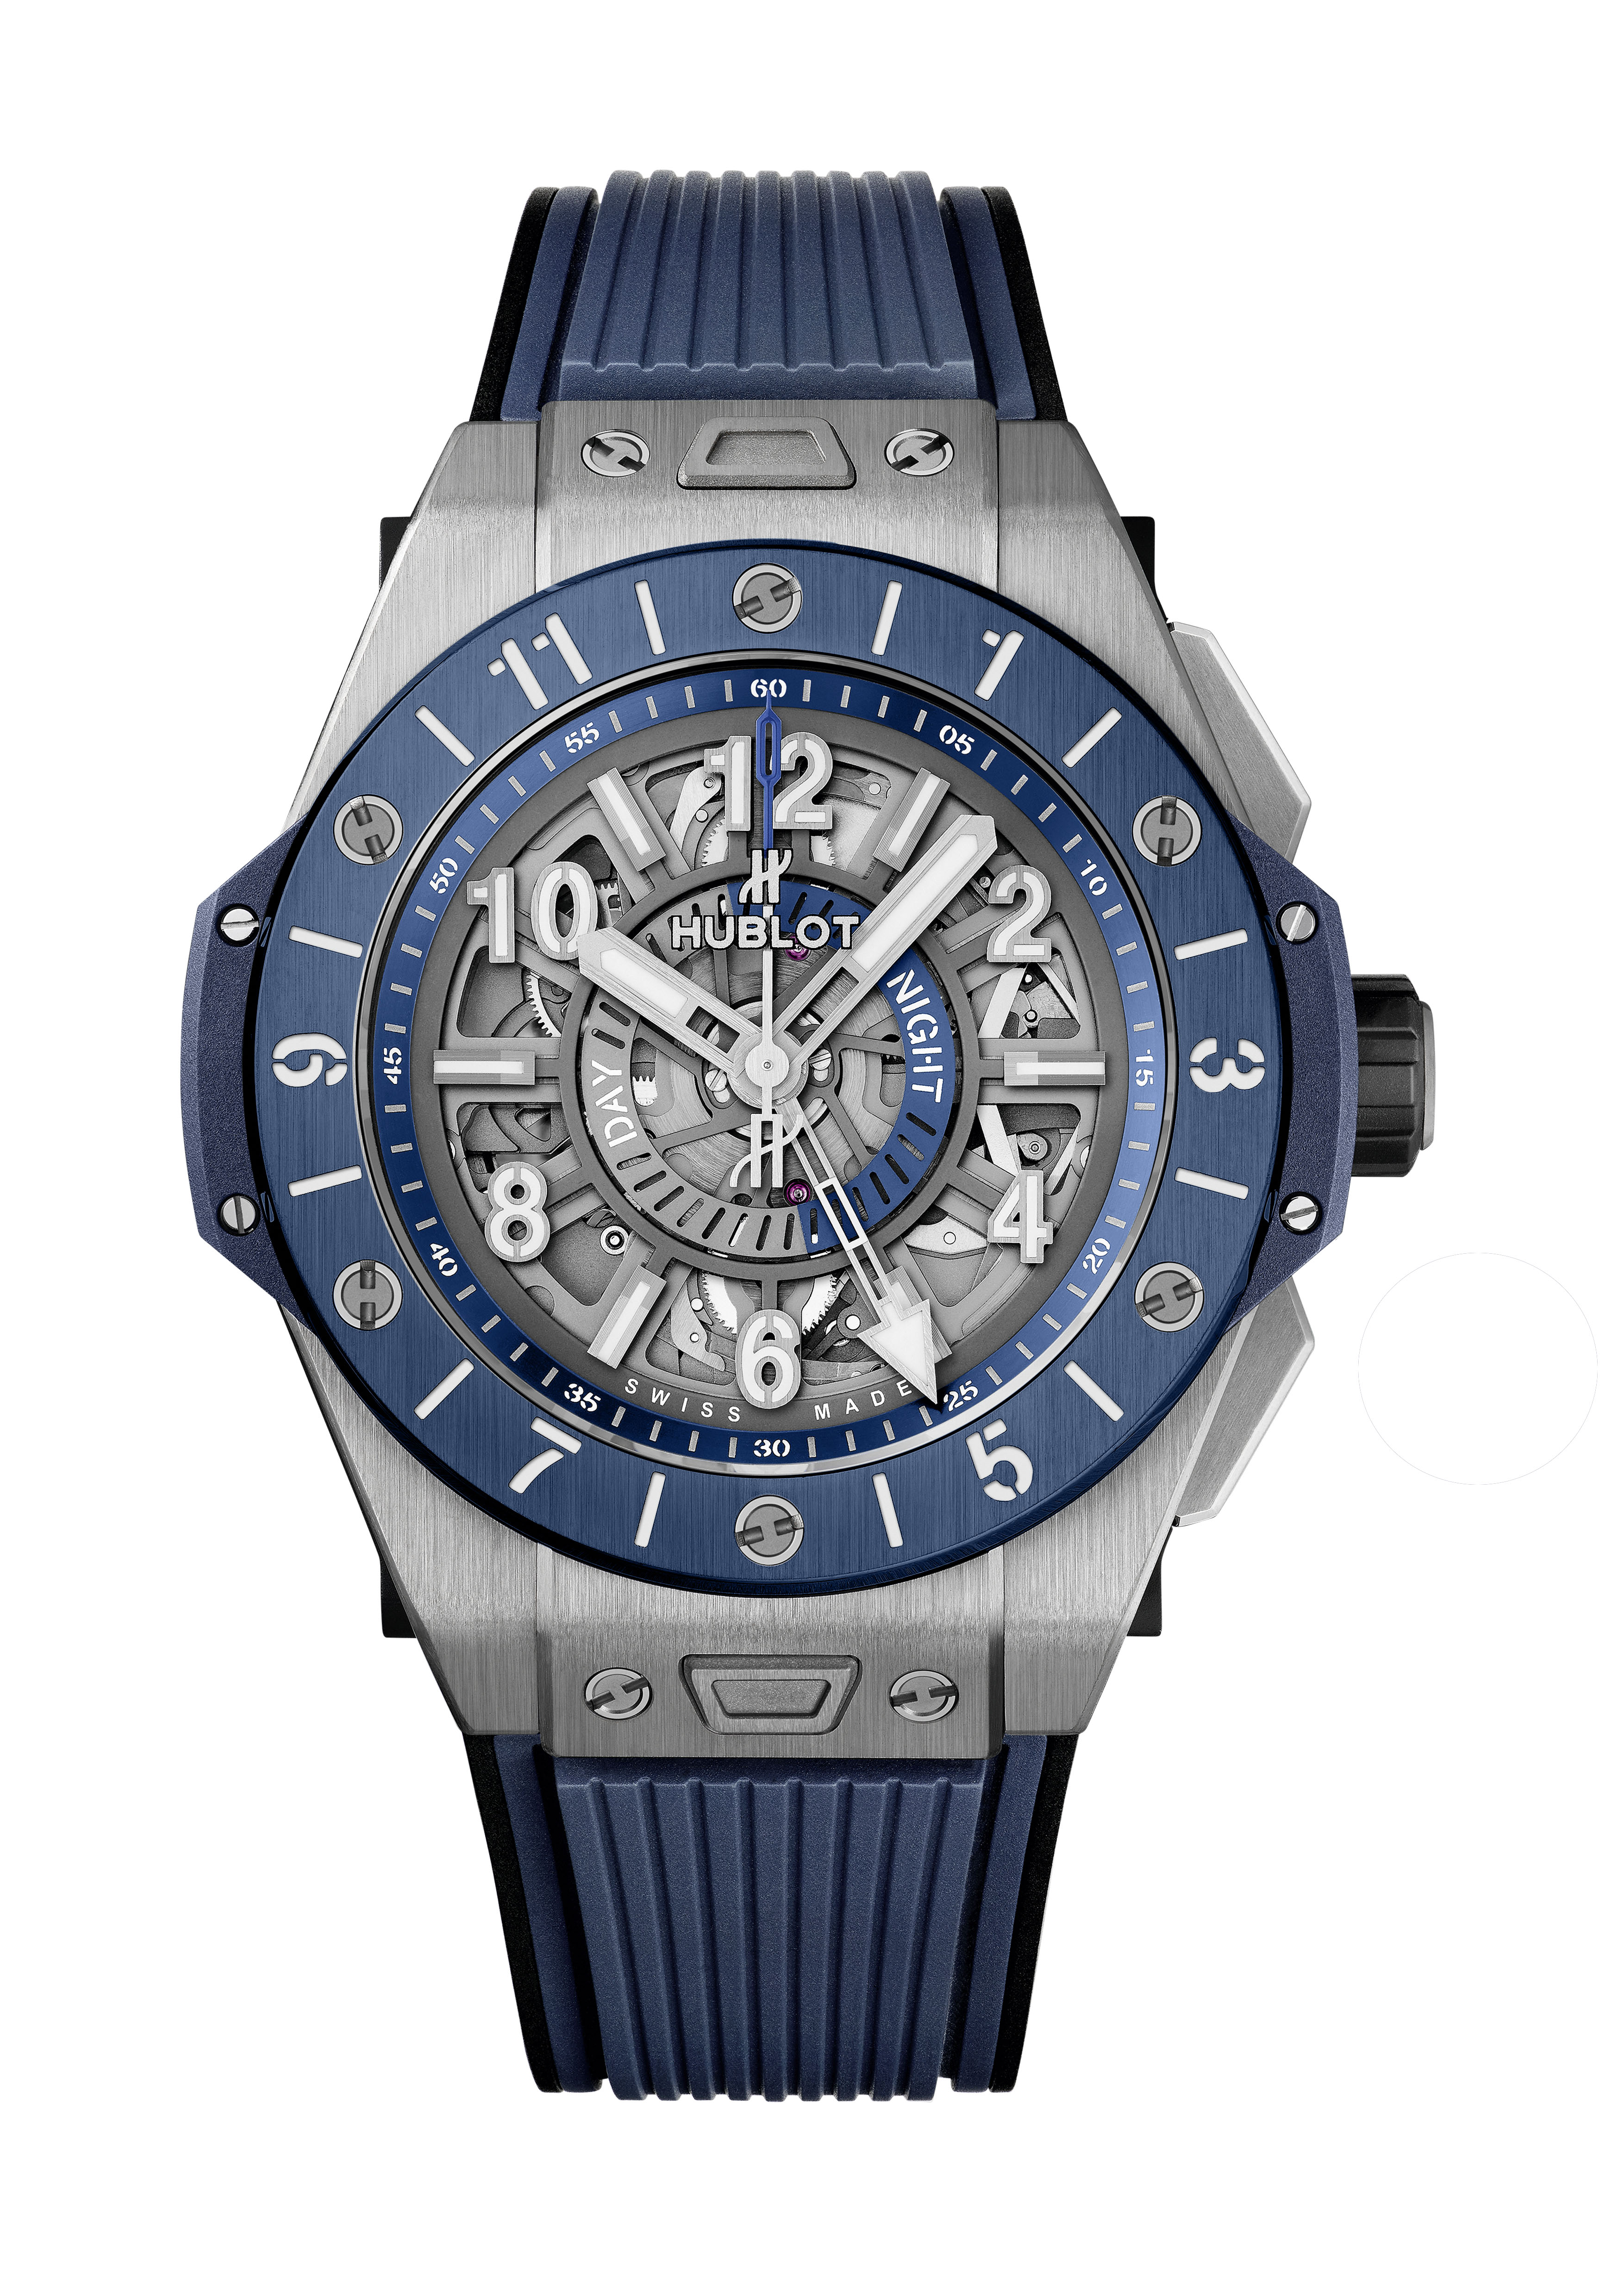 BIG BANG <br> UNICO GMT TITANIUM BLUE CERAMIC